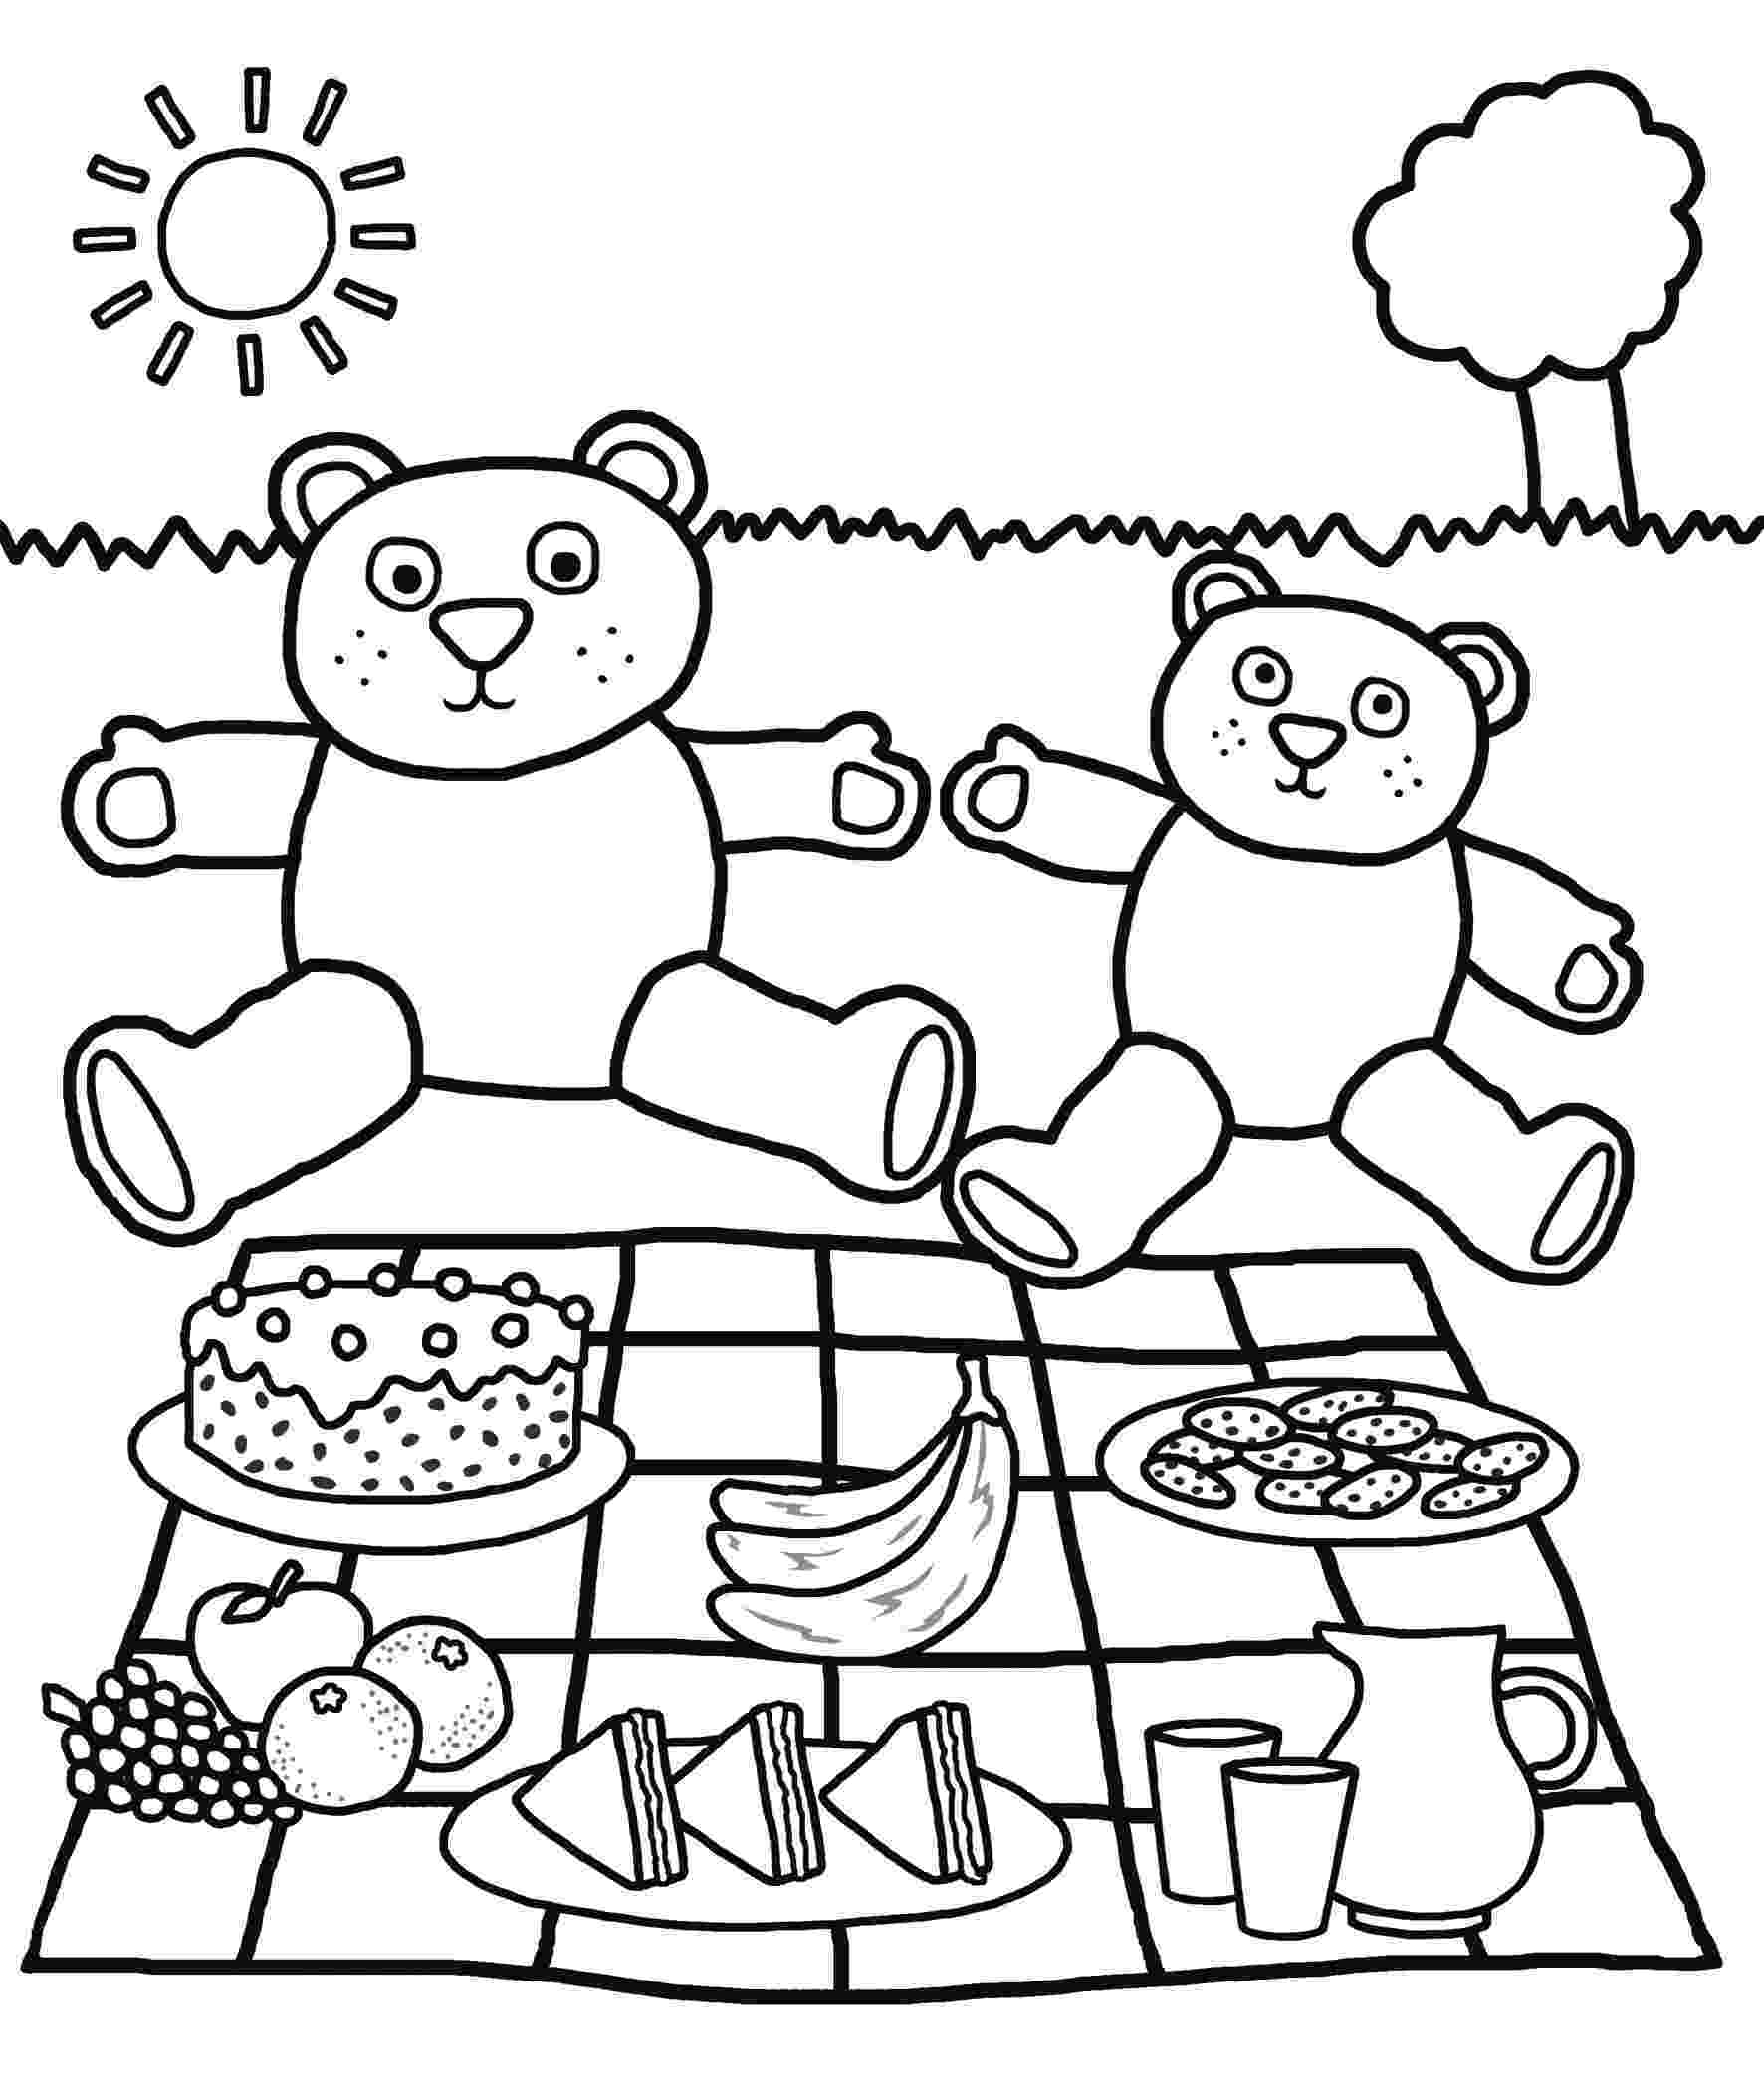 printable preschool coloring pages free printable preschool coloring pages best coloring printable pages preschool coloring